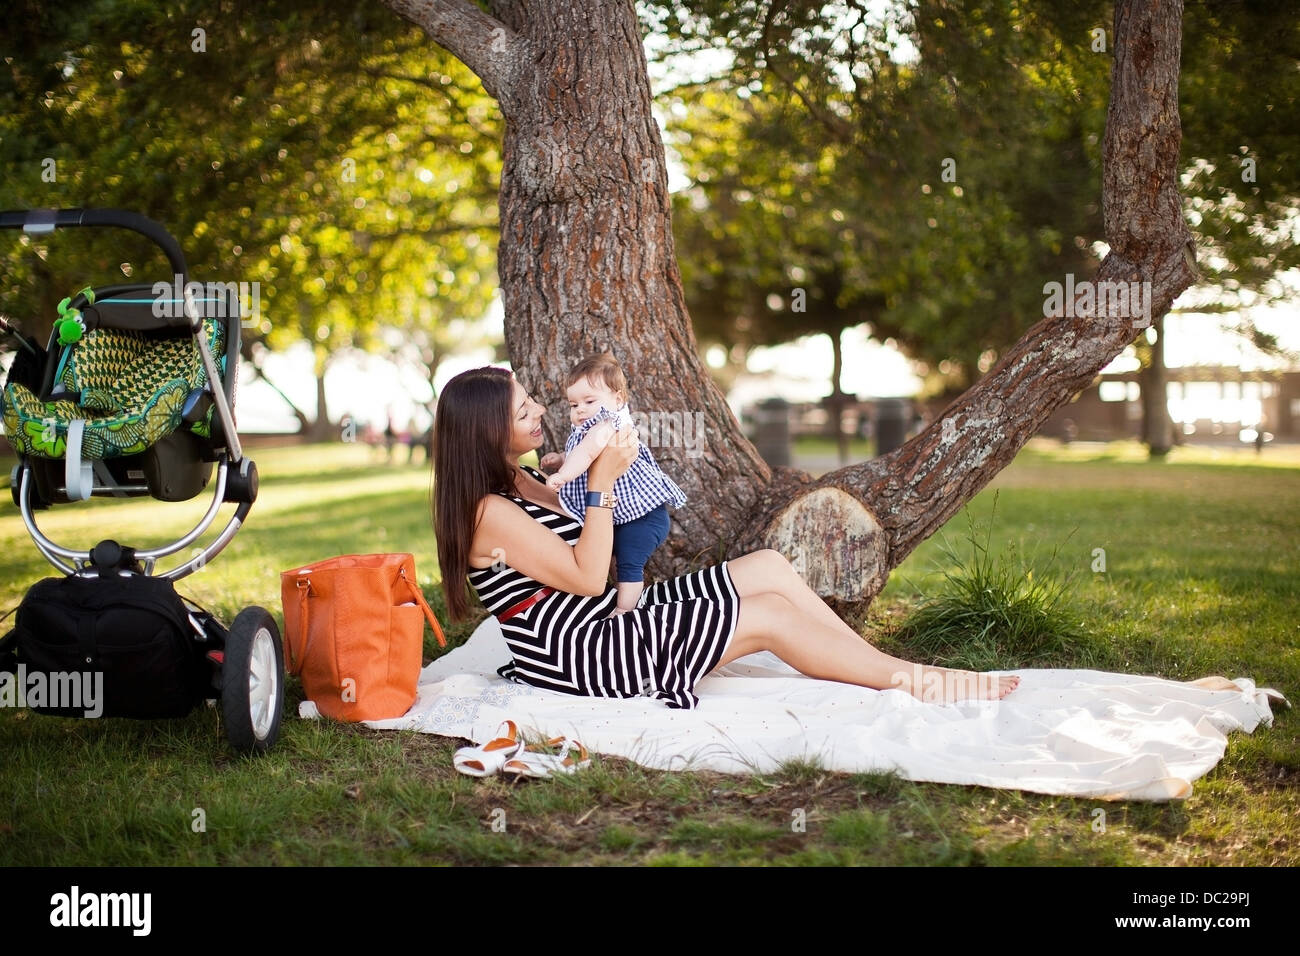 Mother sitting on picnic blanket with baby daughter - Stock Image